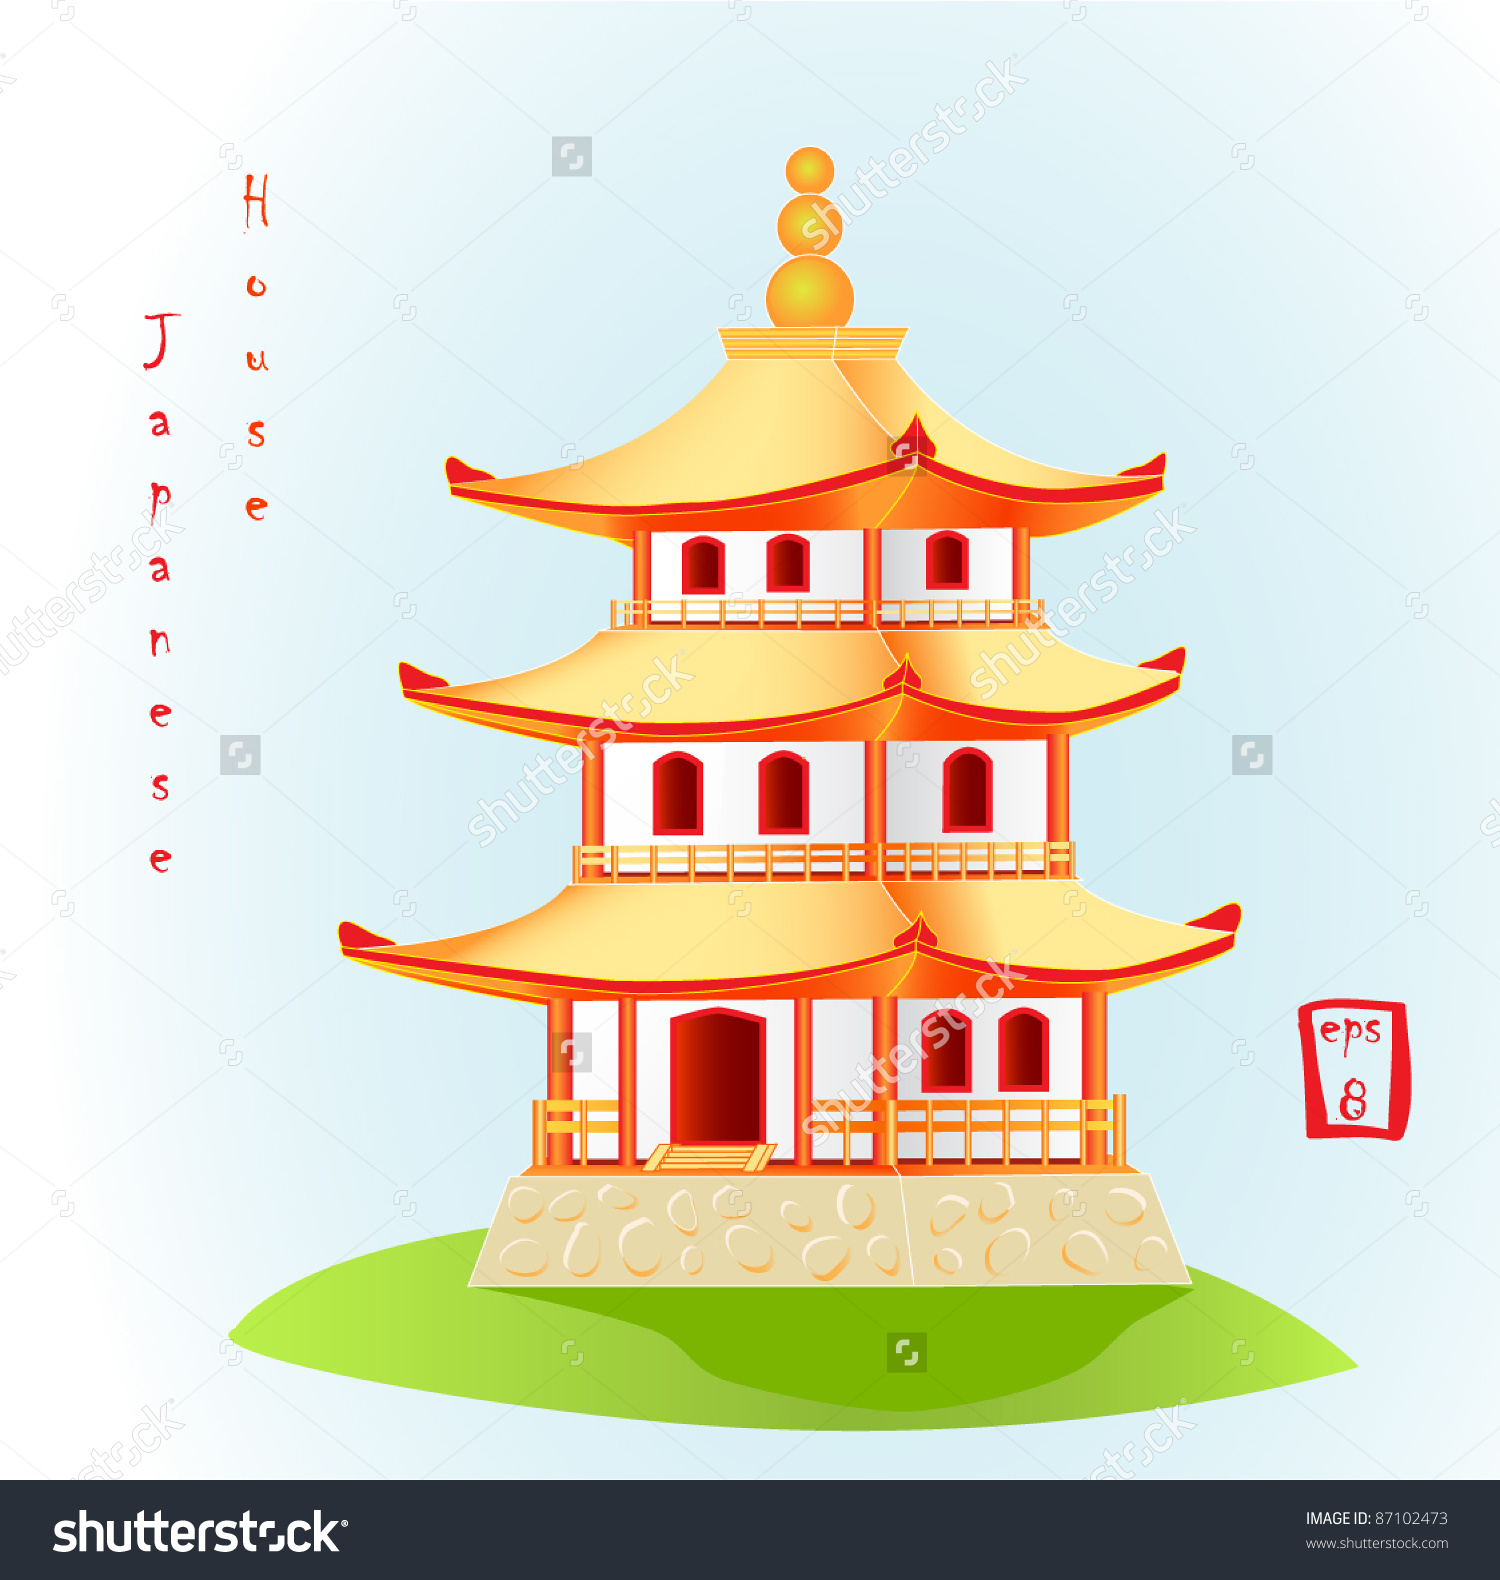 Japan traditional house clipart image free stock Japanese traditional house clipart - ClipartFest image free stock